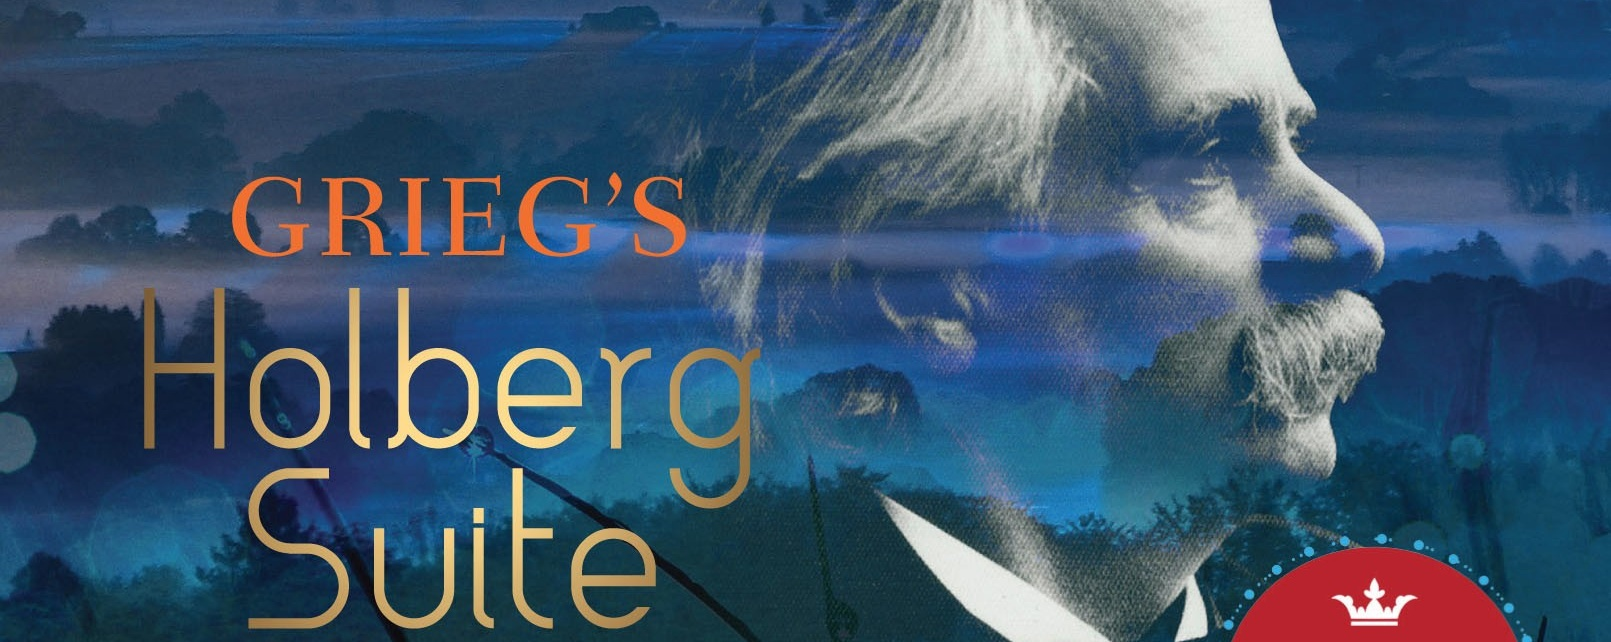 VCH Chamber Series: Grieg's Holberg Suite